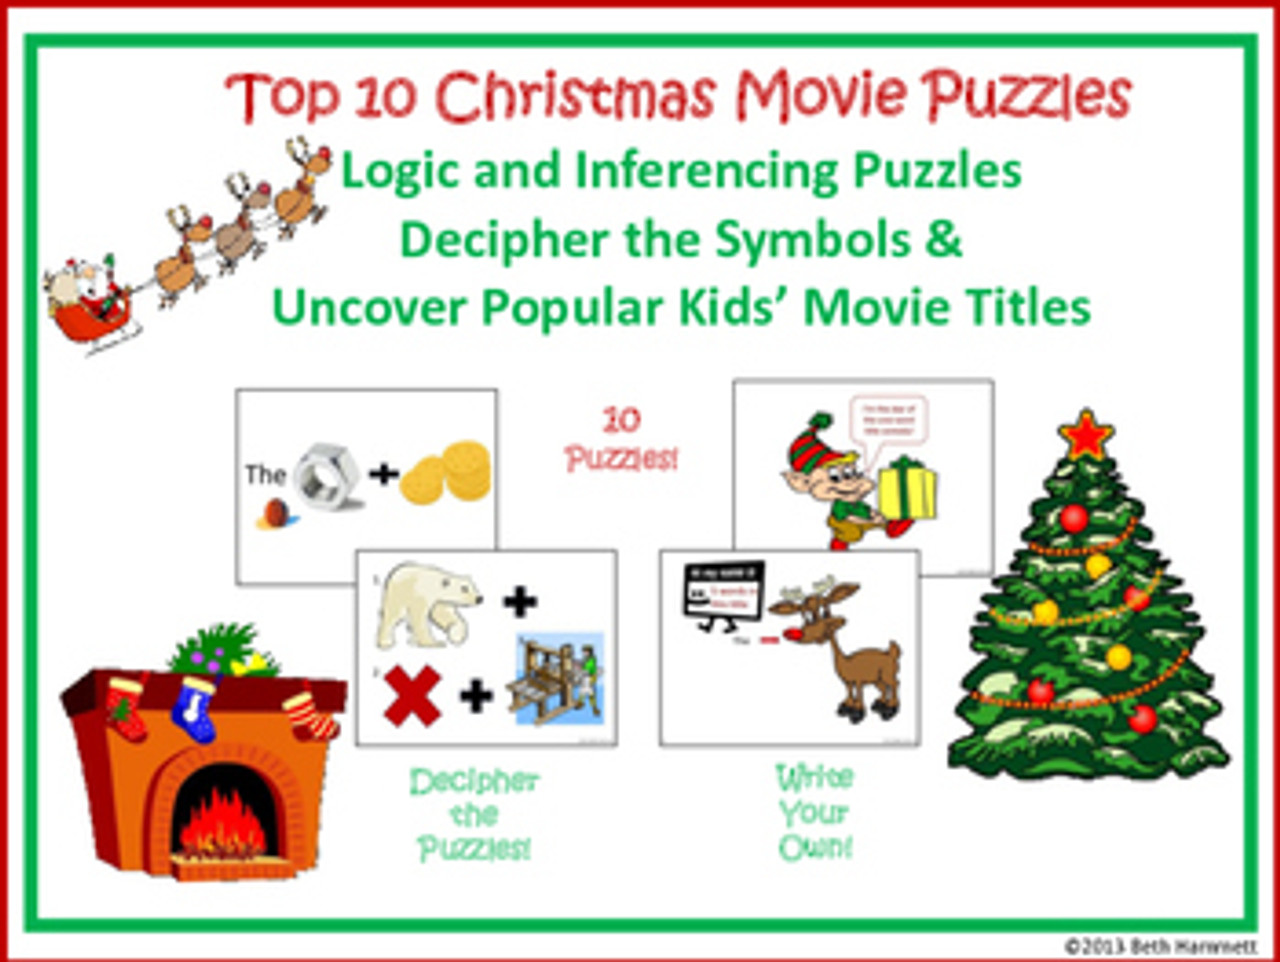 Top Ten Christmas Movies Puzzles - FREE